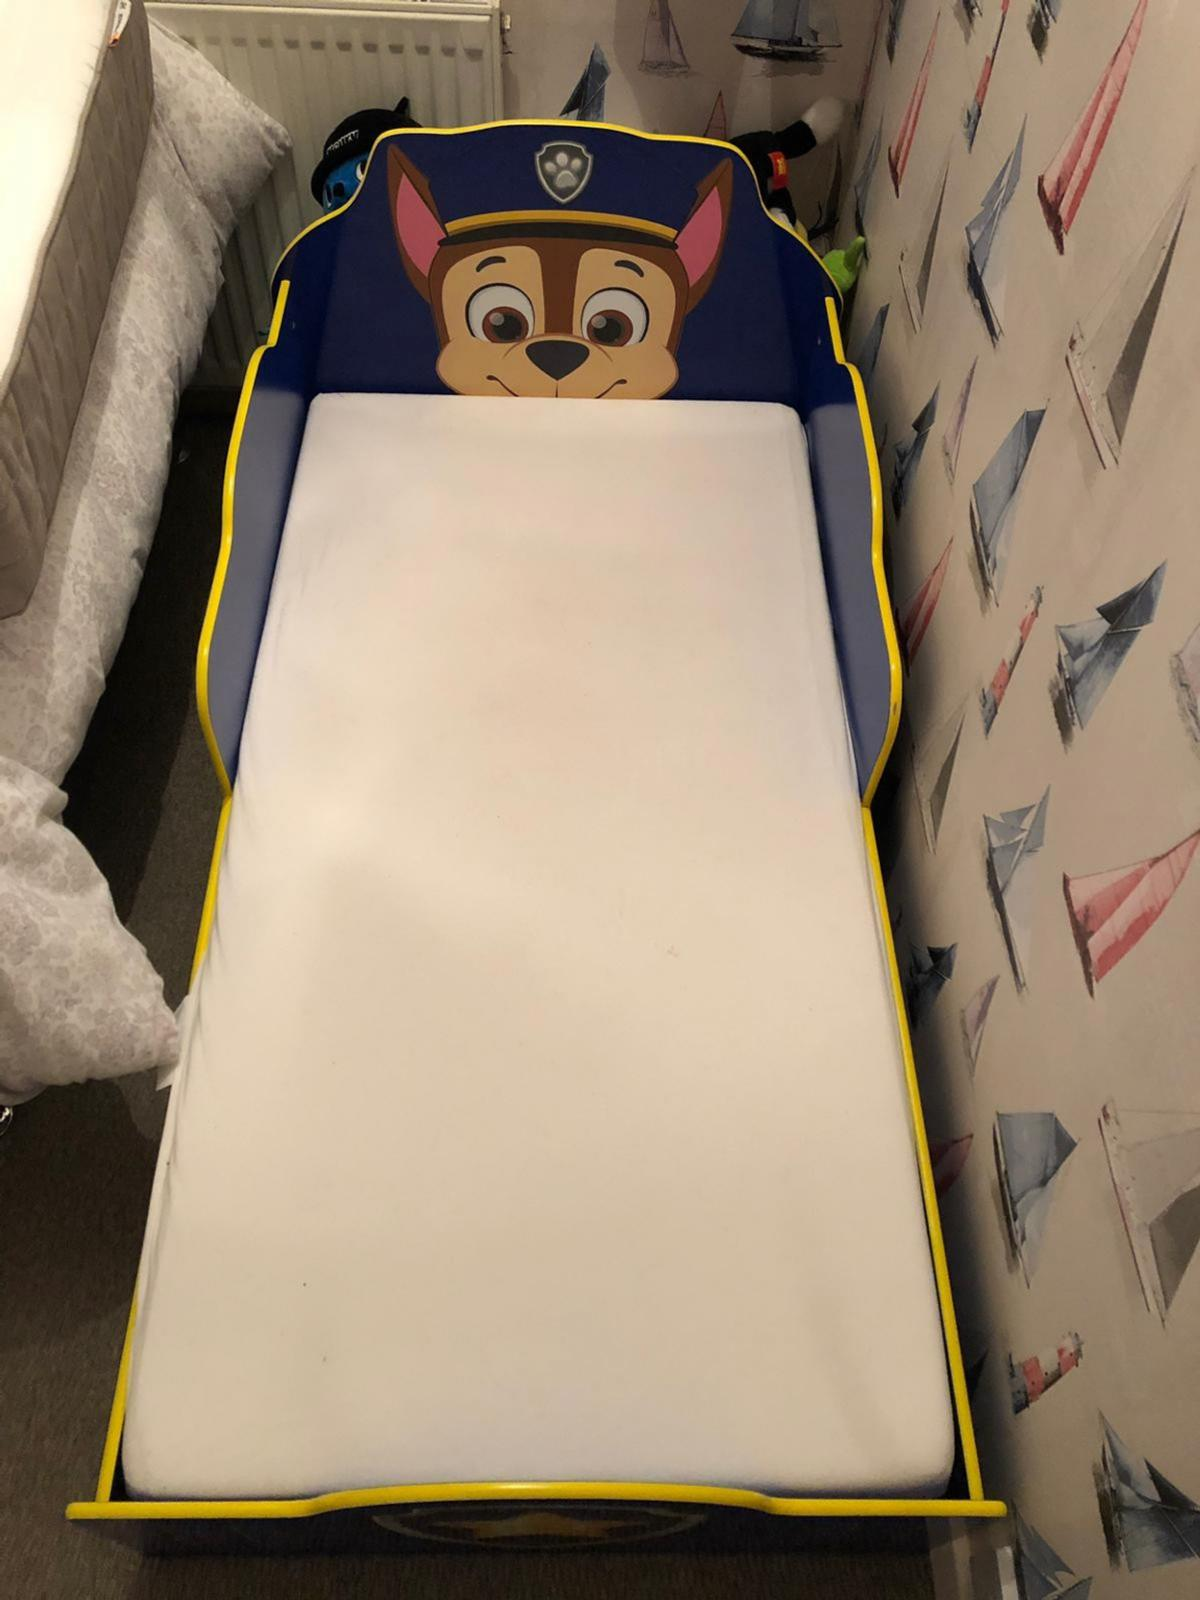 Astounding Wooden Paw Patrol Bed In Rm15 South Ockendon For 60 00 For Beatyapartments Chair Design Images Beatyapartmentscom